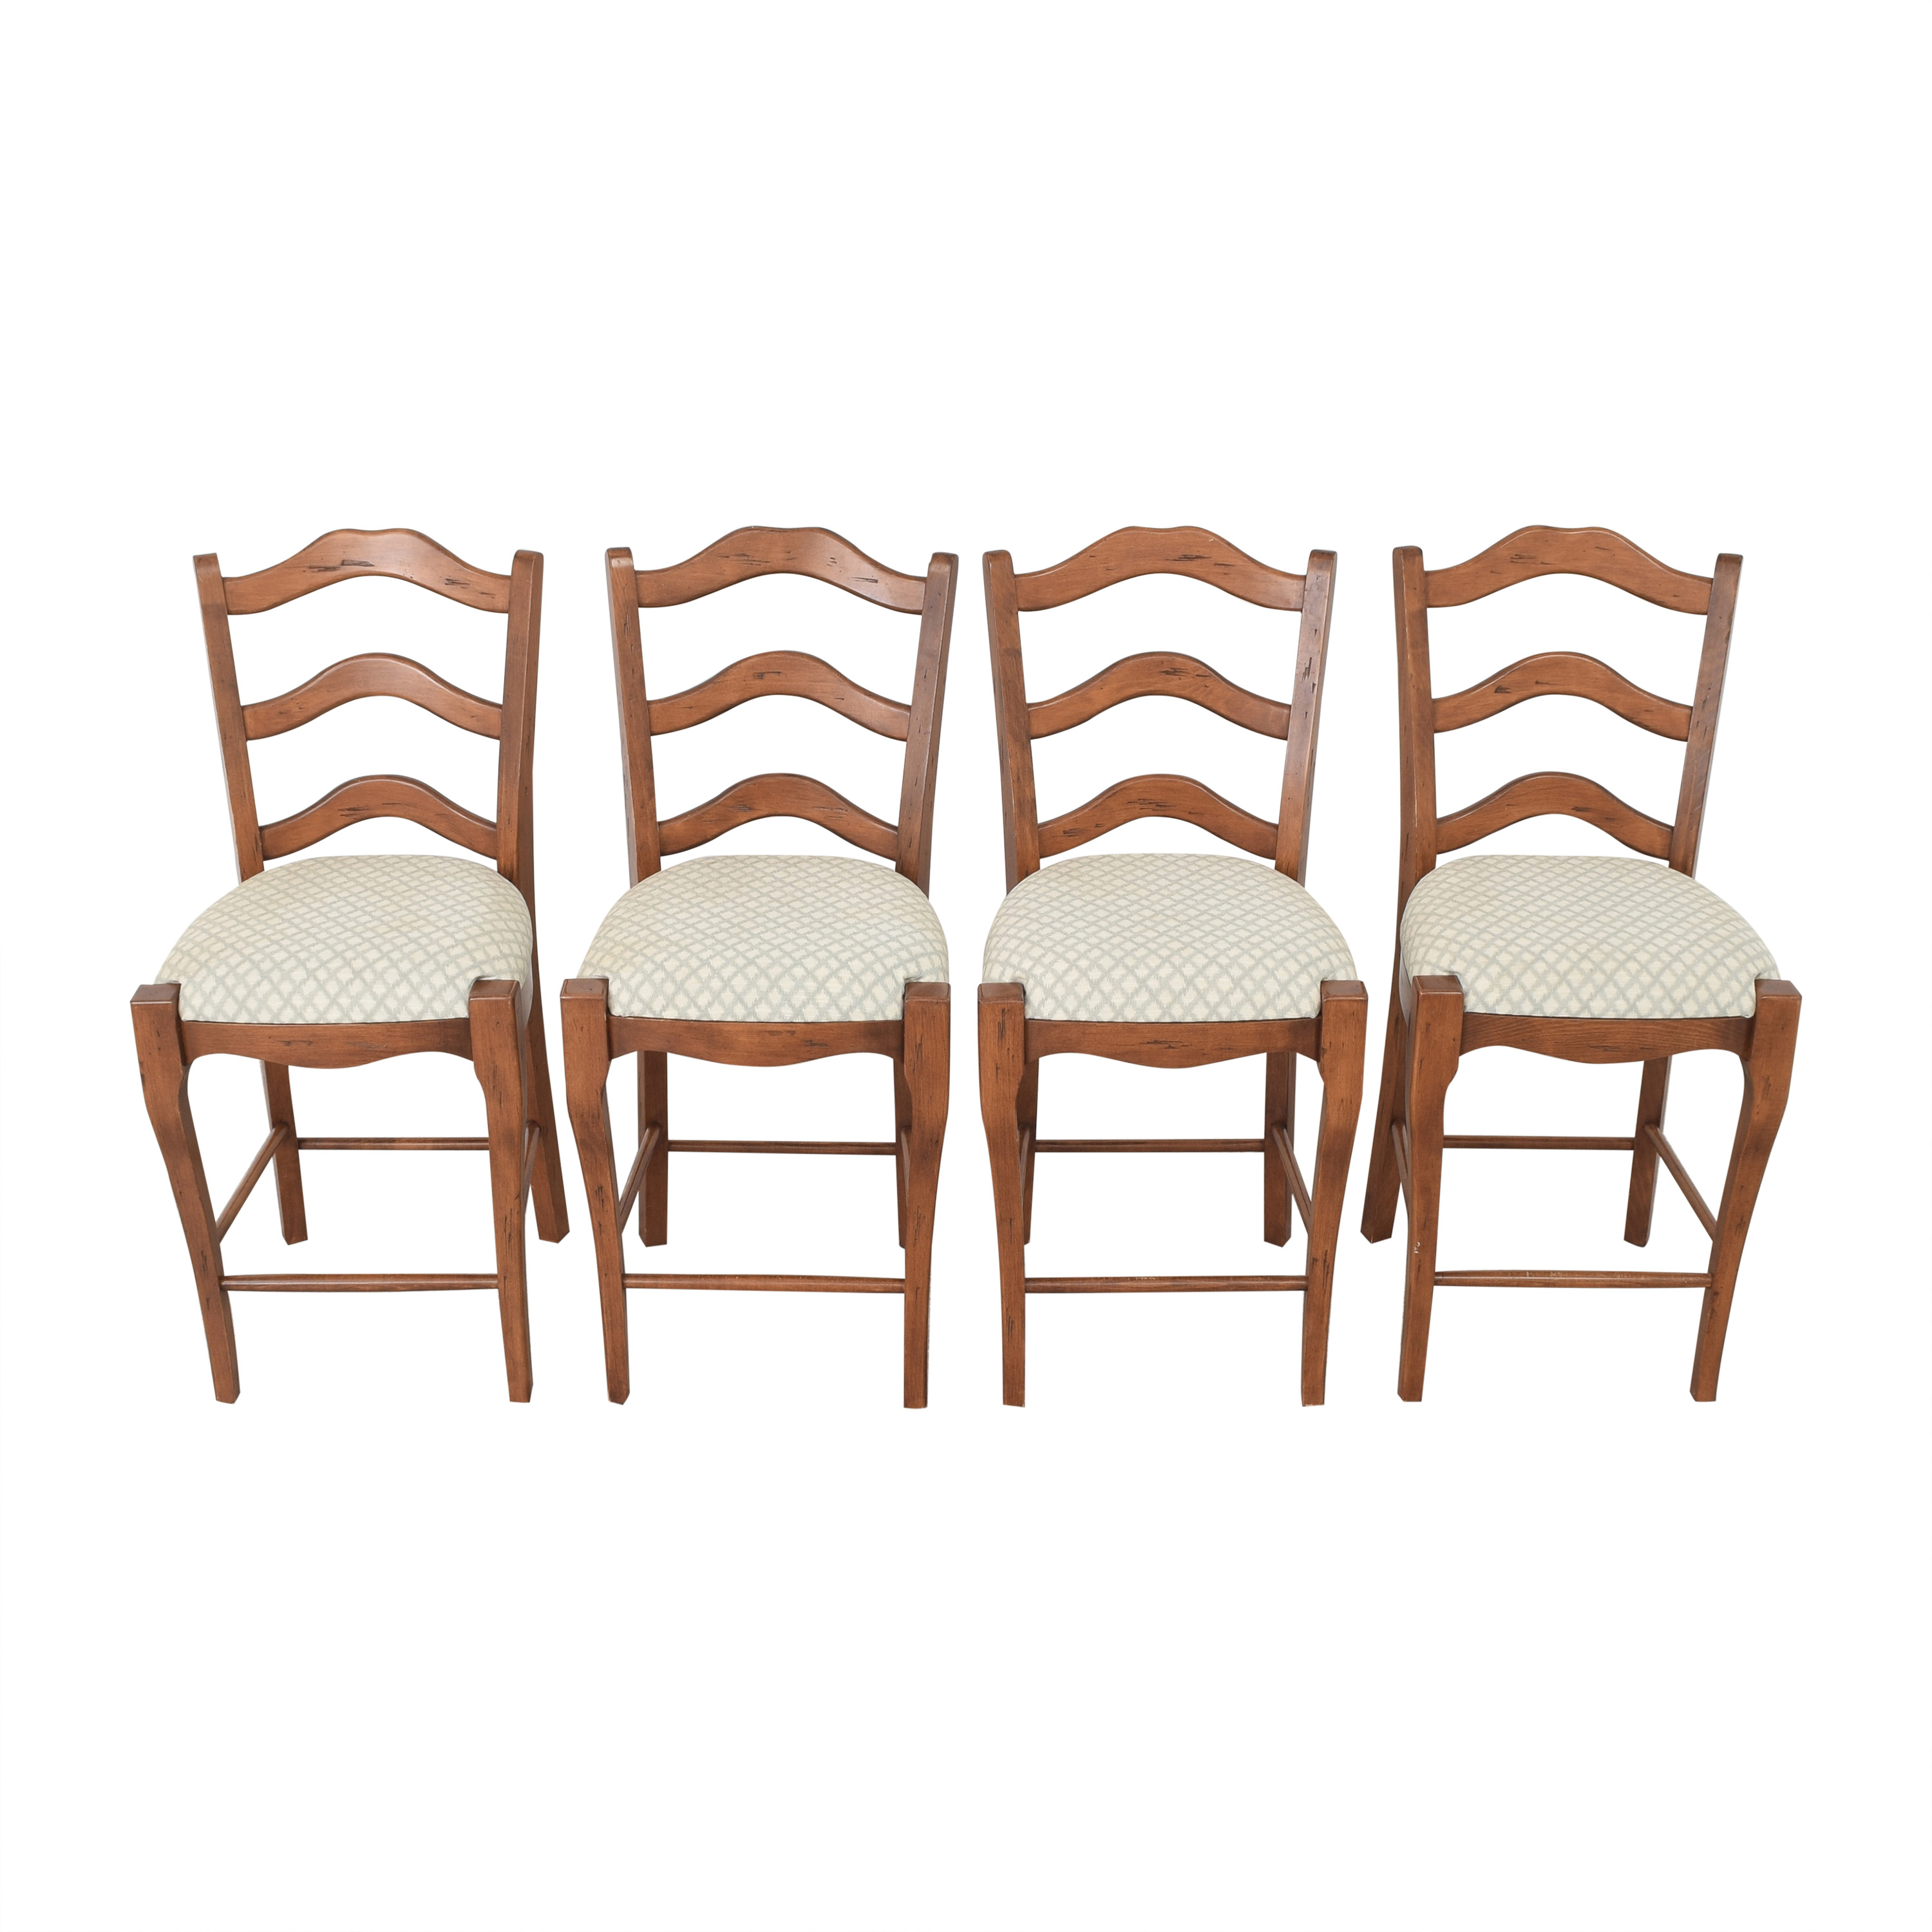 Ladder Back Bar Stools / Chairs